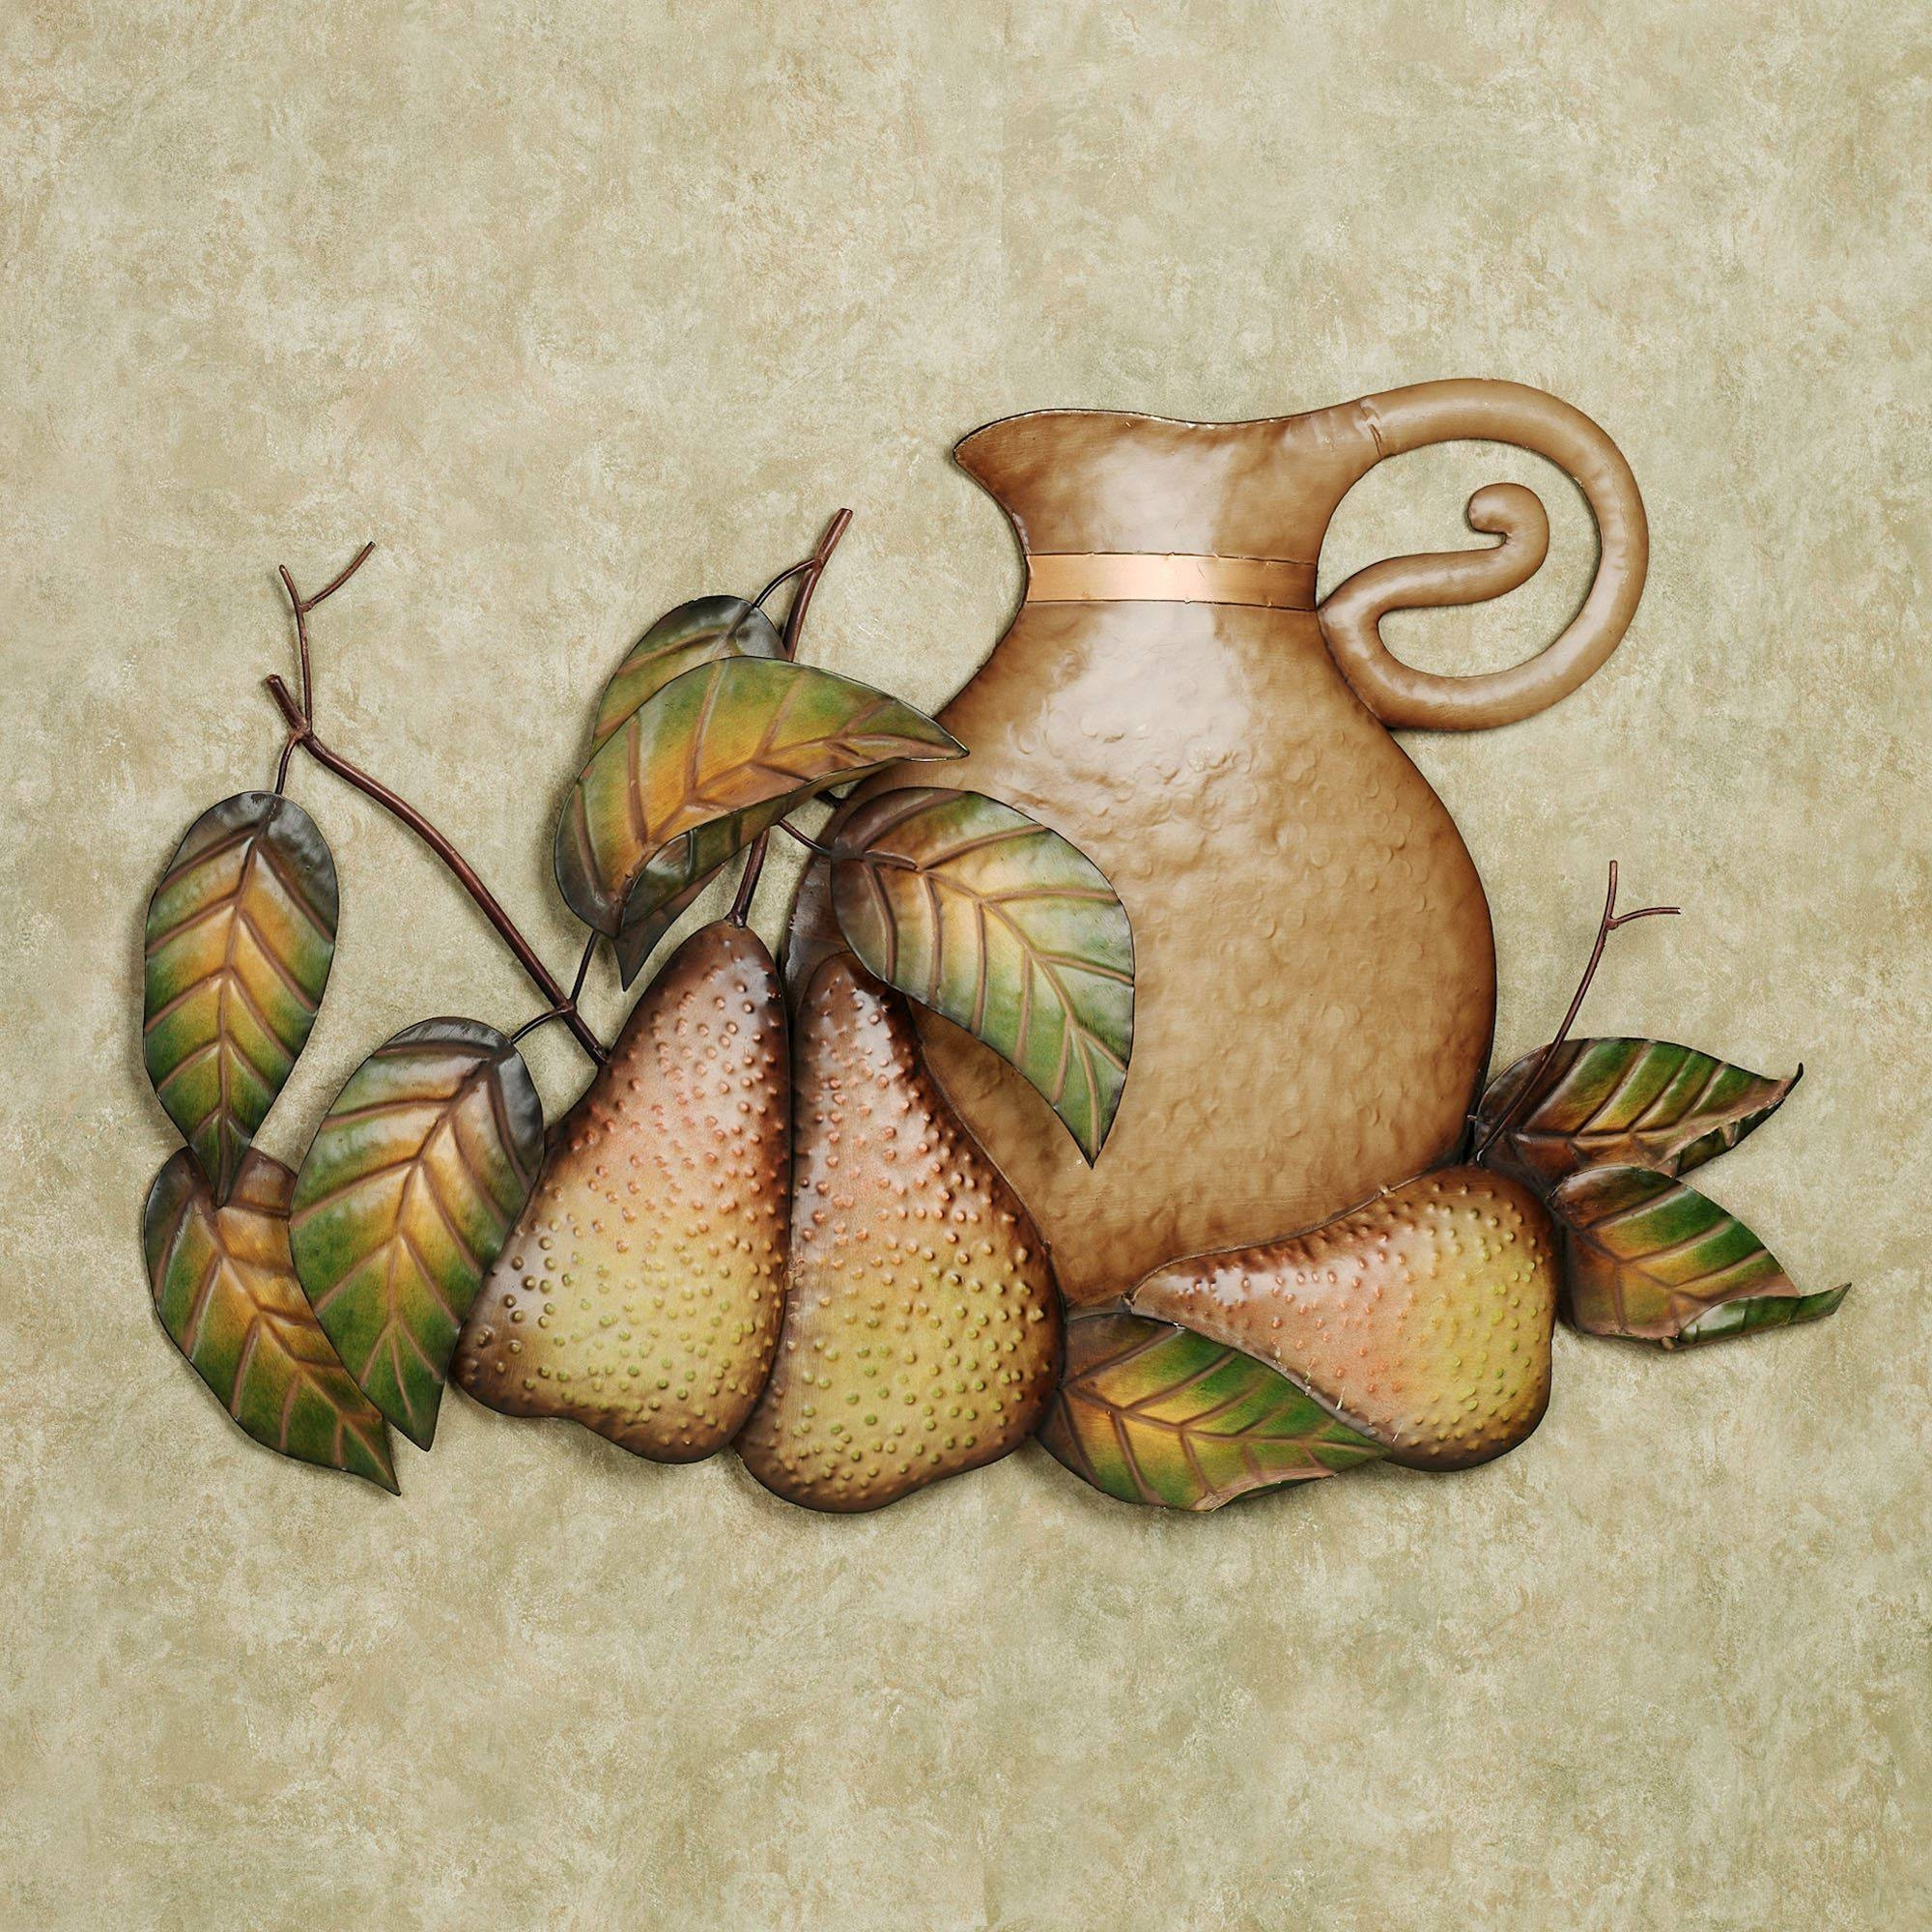 Fall Feast Pears Metal Wall Art Sculpture Throughout Most Recent Metal Wall Art For Kitchen (View 10 of 20)